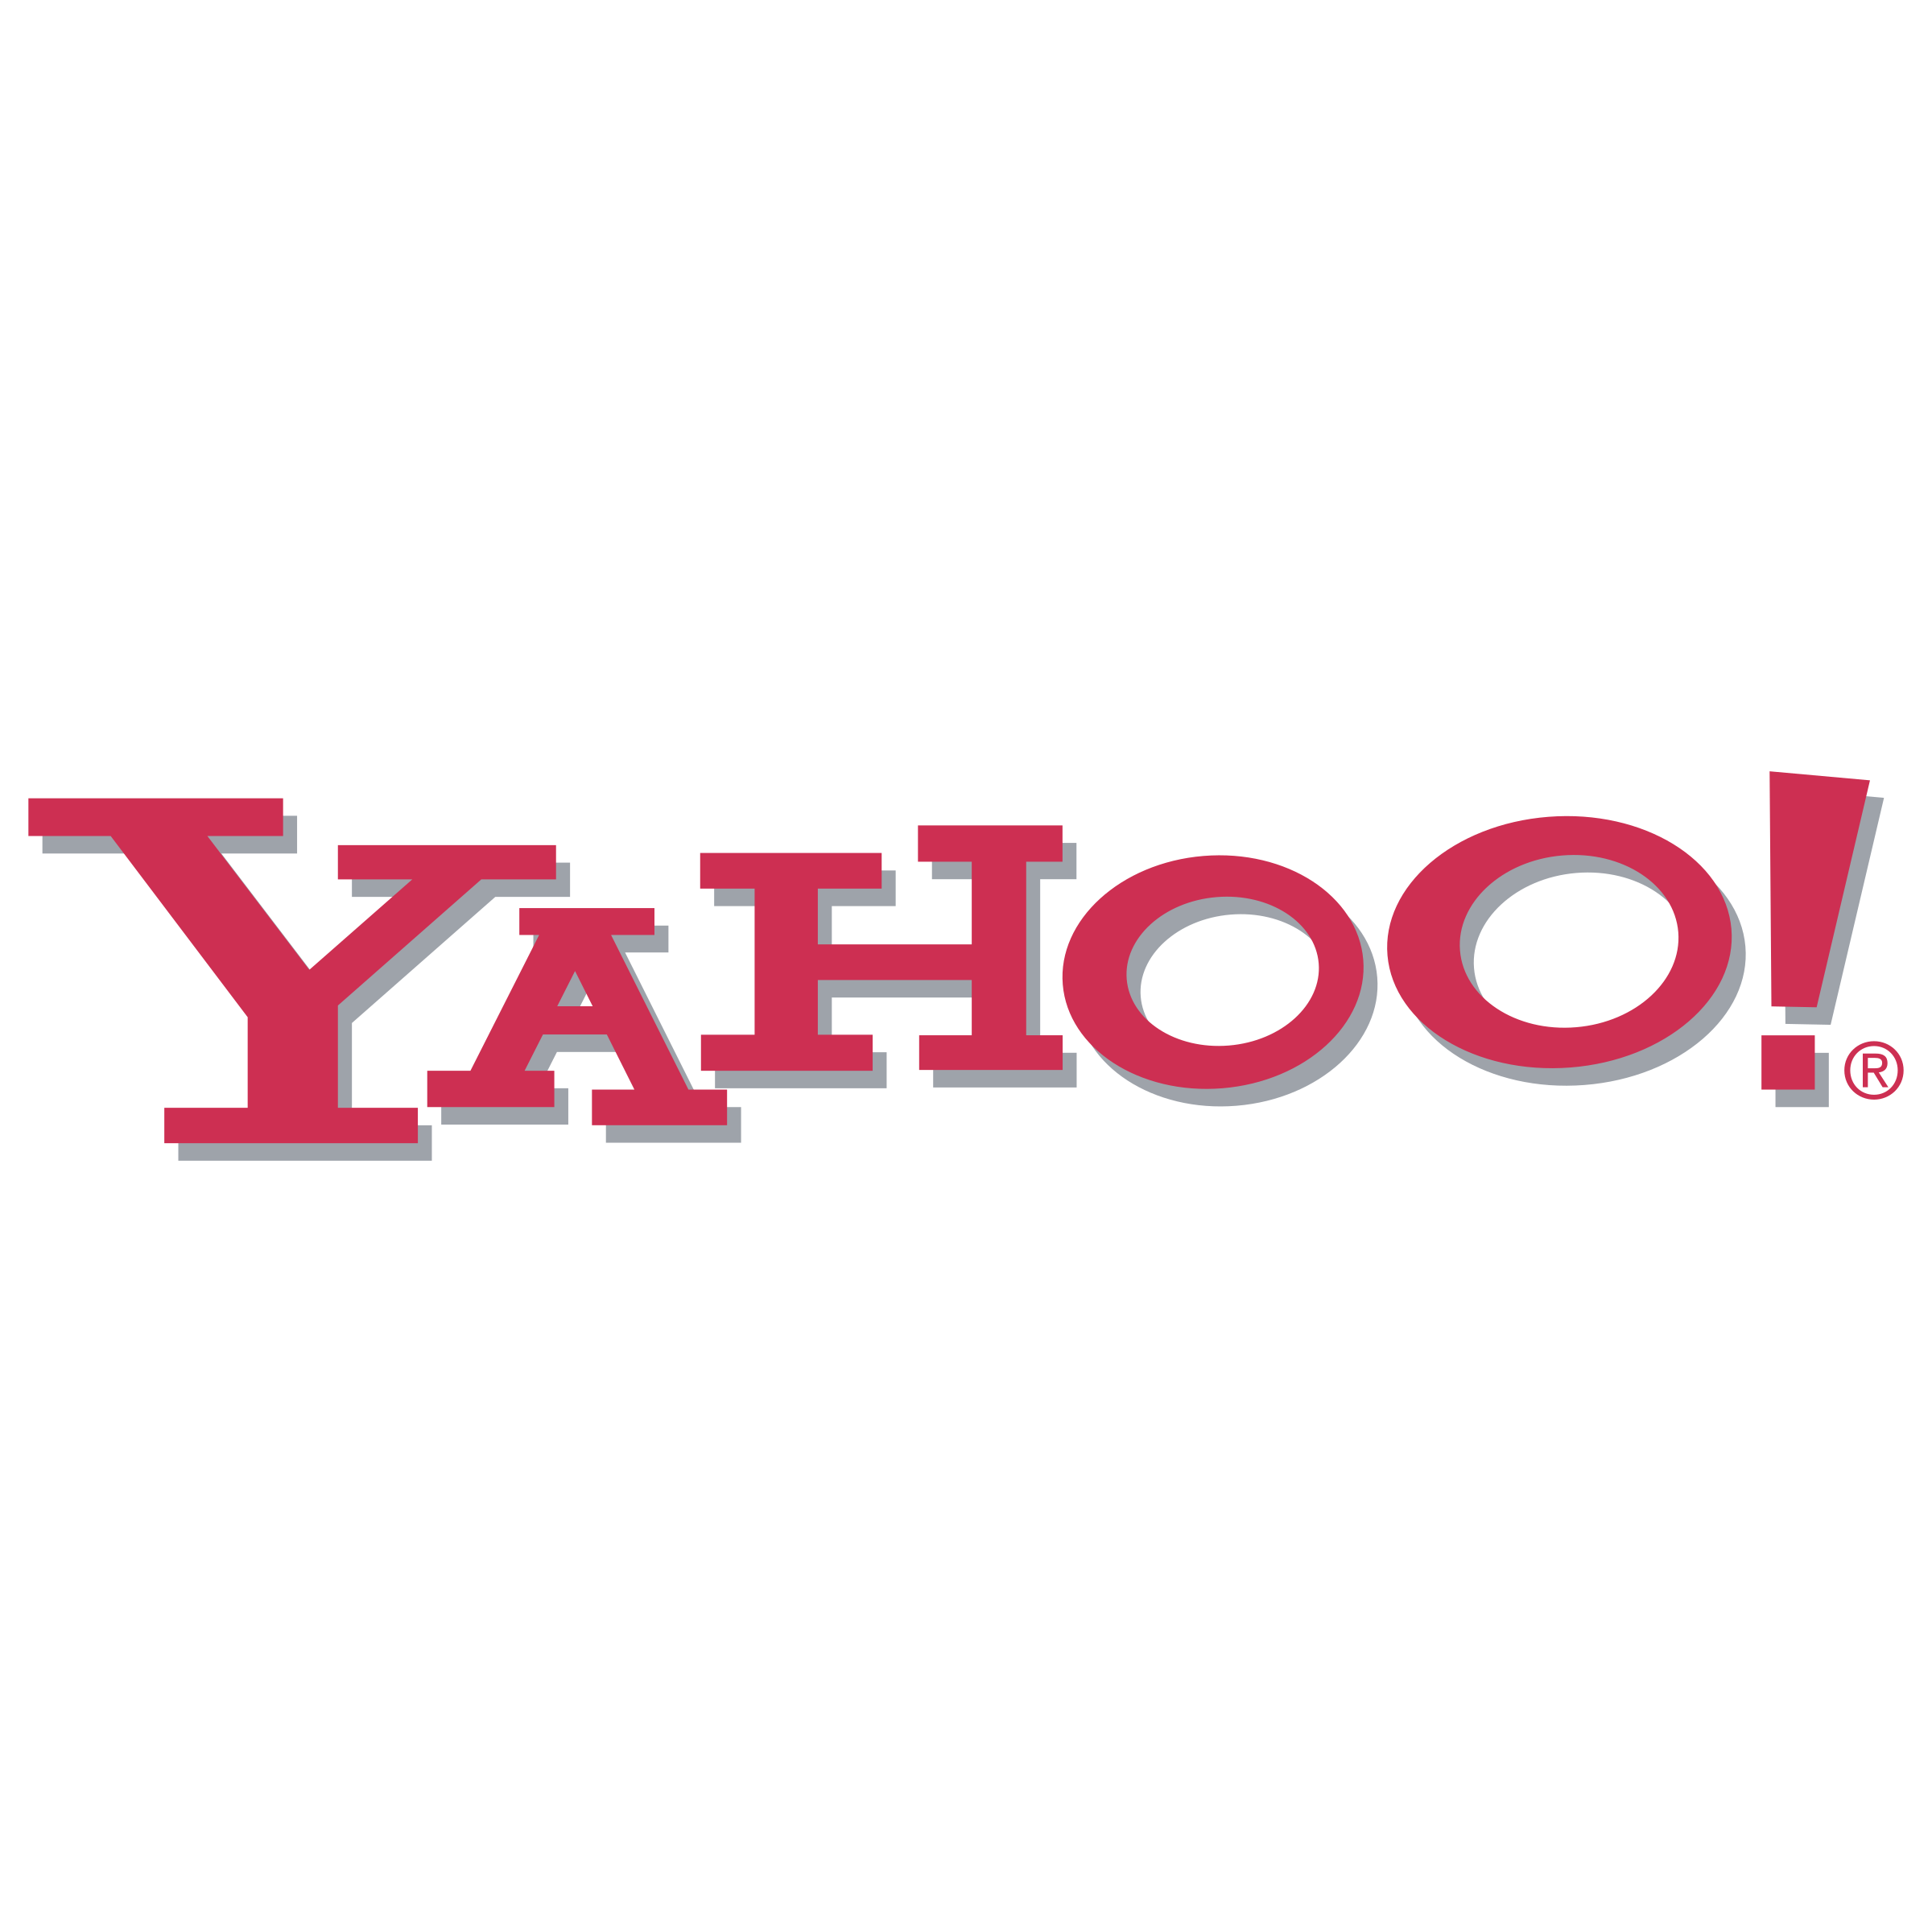 yahoo logo png transparent svg vector freebie supply rh freebiesupply com yahoo finance logo vector yahoo finance logo vector